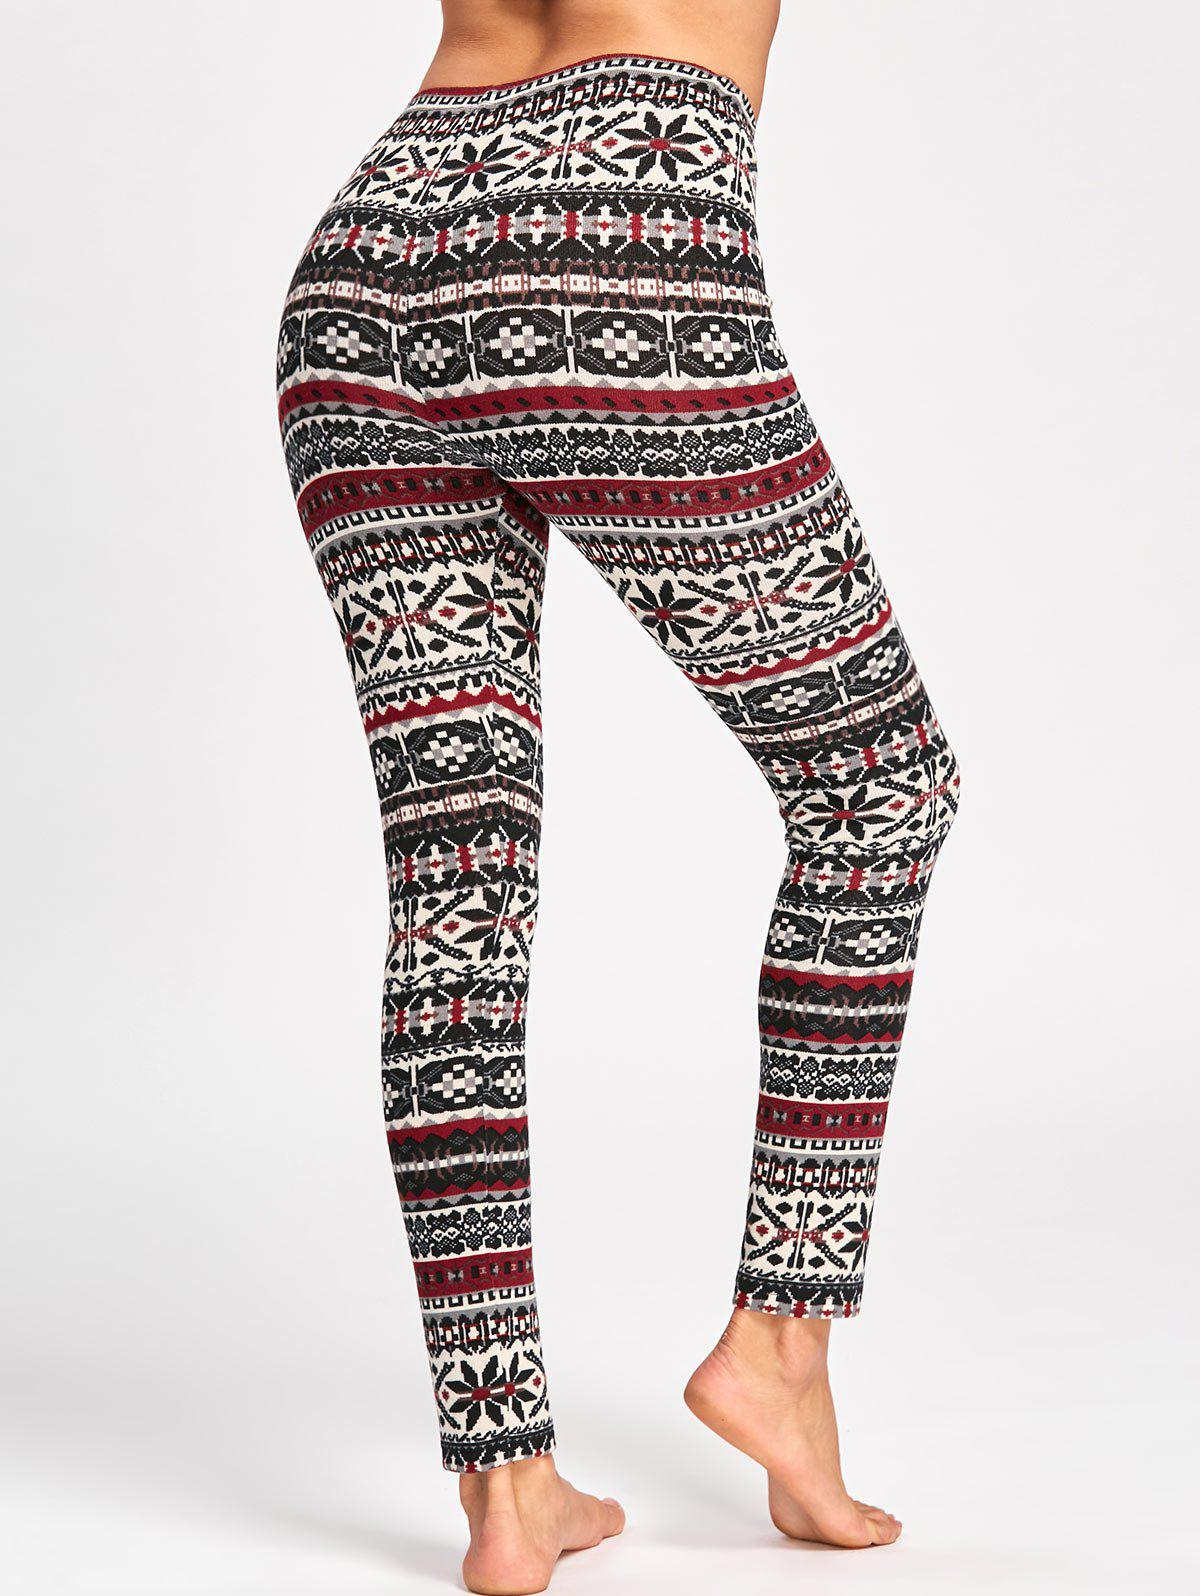 Christmas Graphic Skinny Pants - COLORMIX 2XL